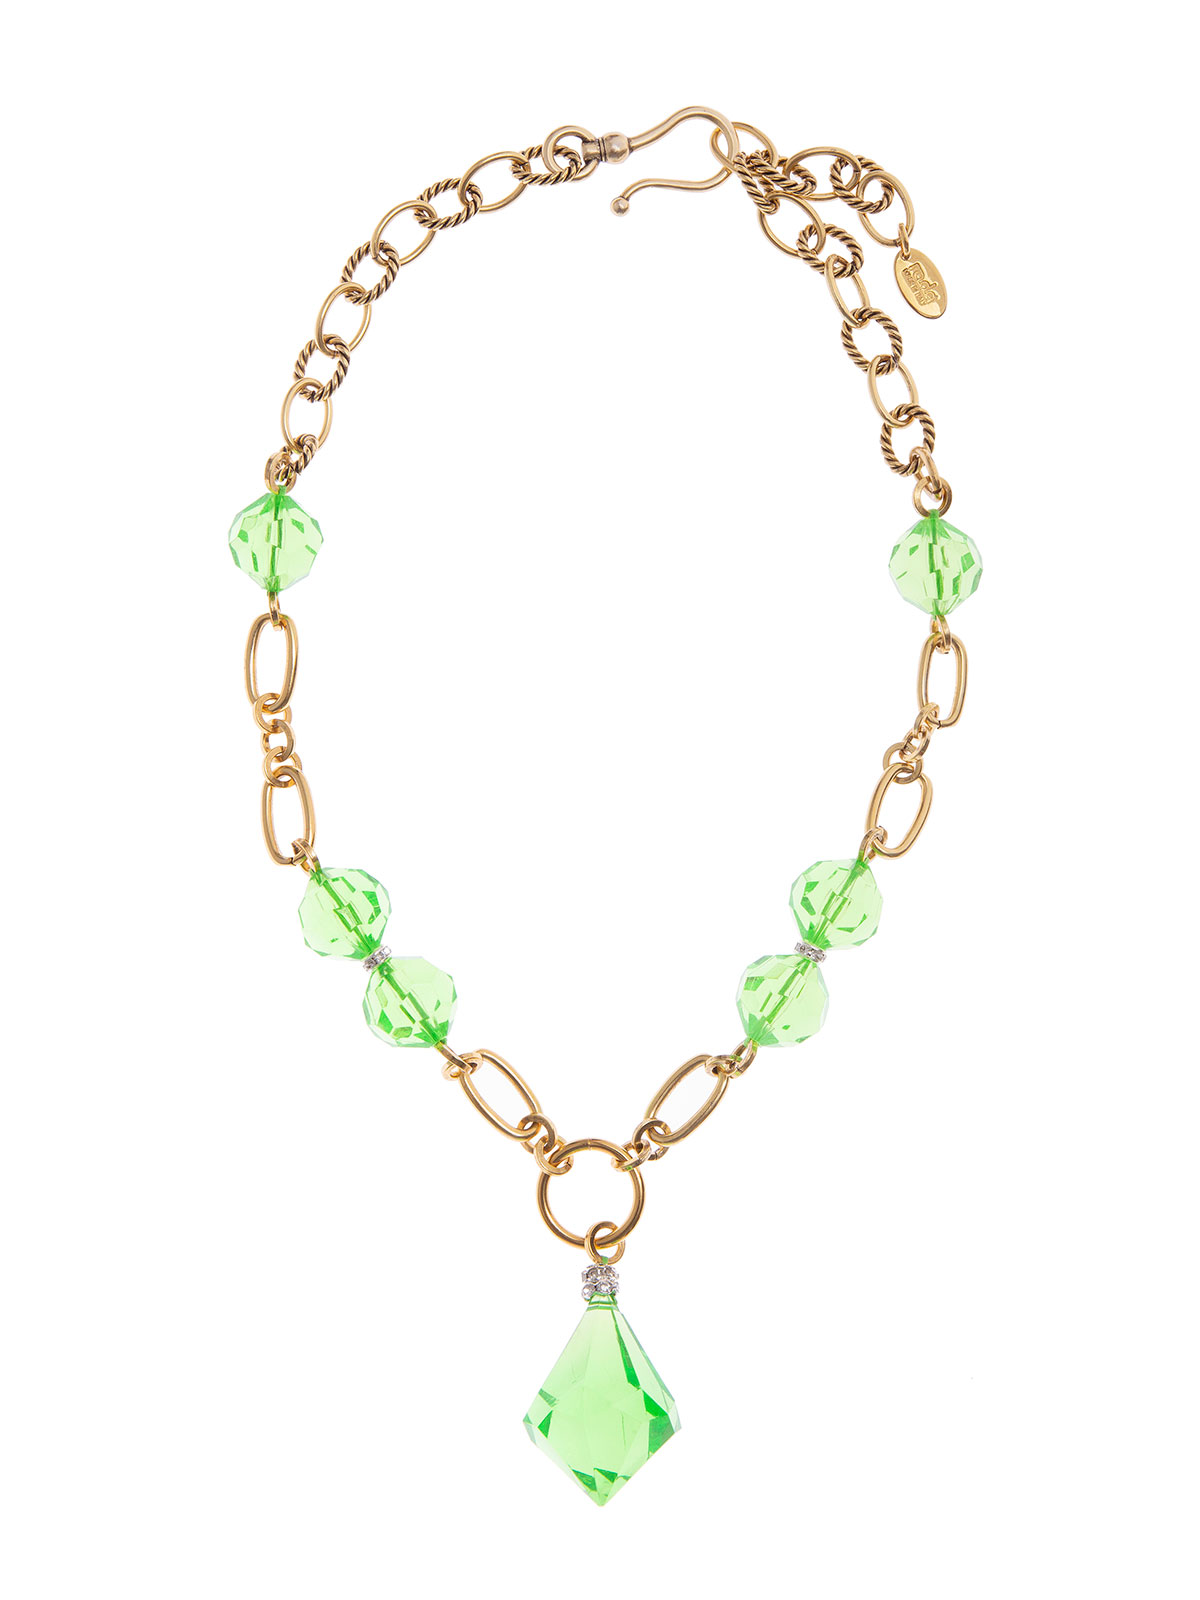 Chain necklace with plexiglass  beads and drop